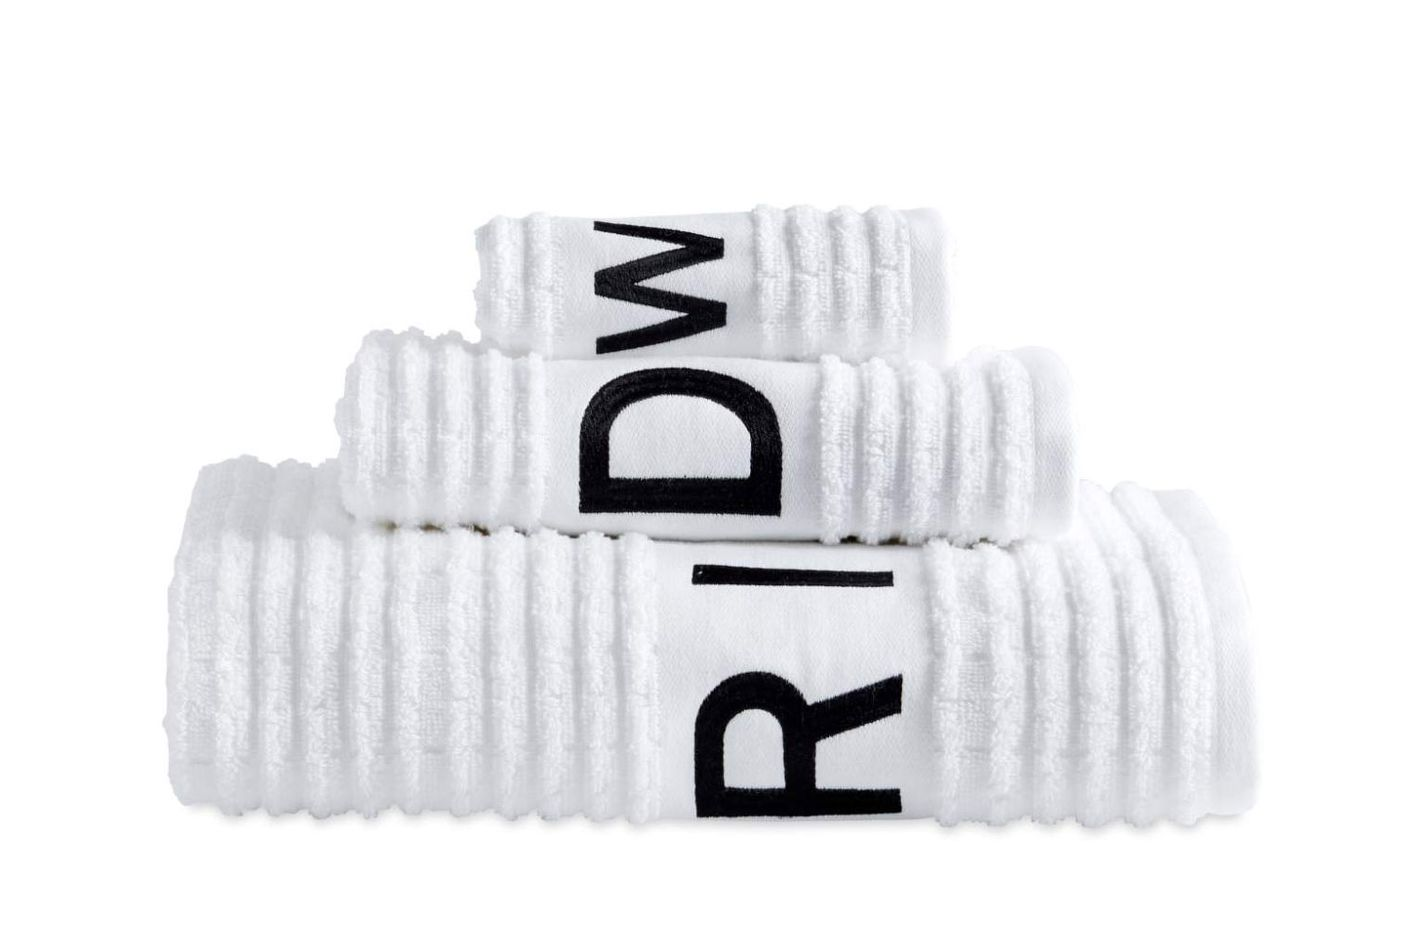 DKNY Chatter Set of 3 Towels